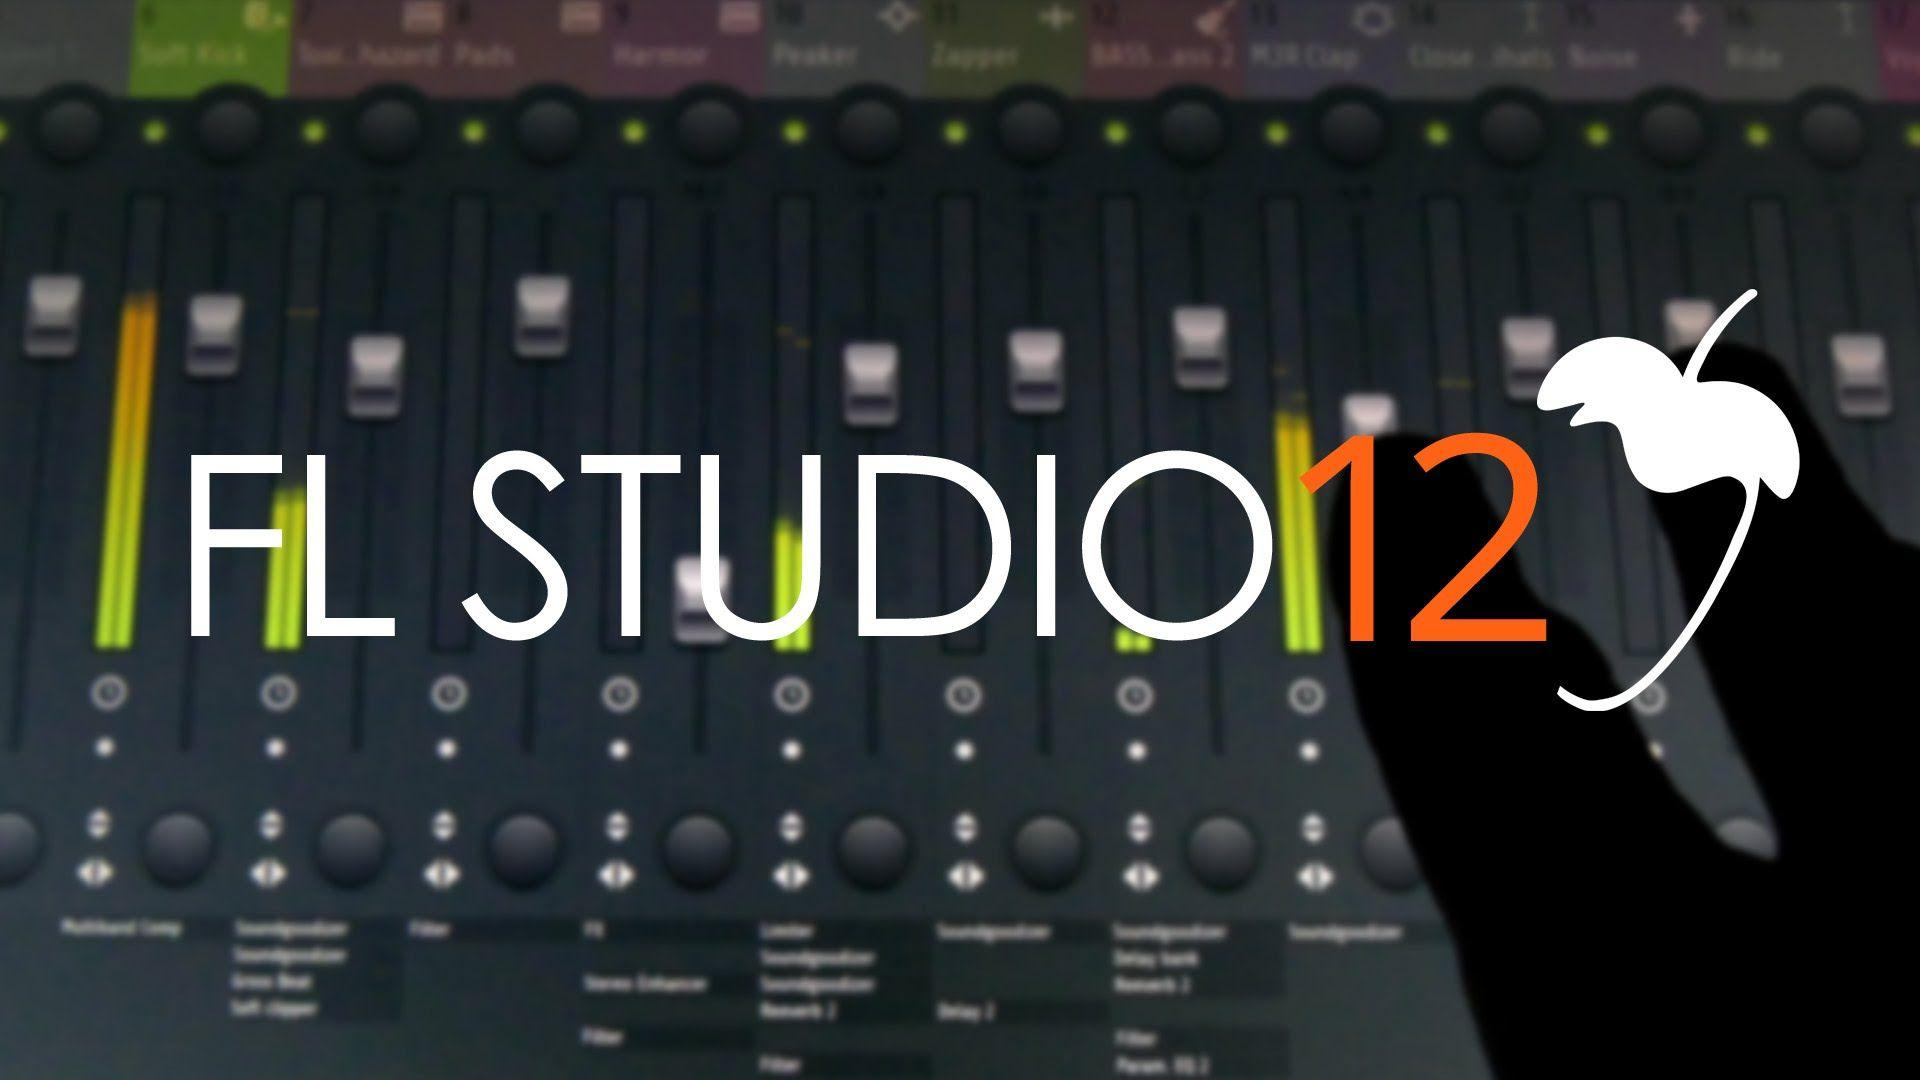 How to keygen fl studio 20 | FL Studio 20 1 2 887 Crack with Reg Key